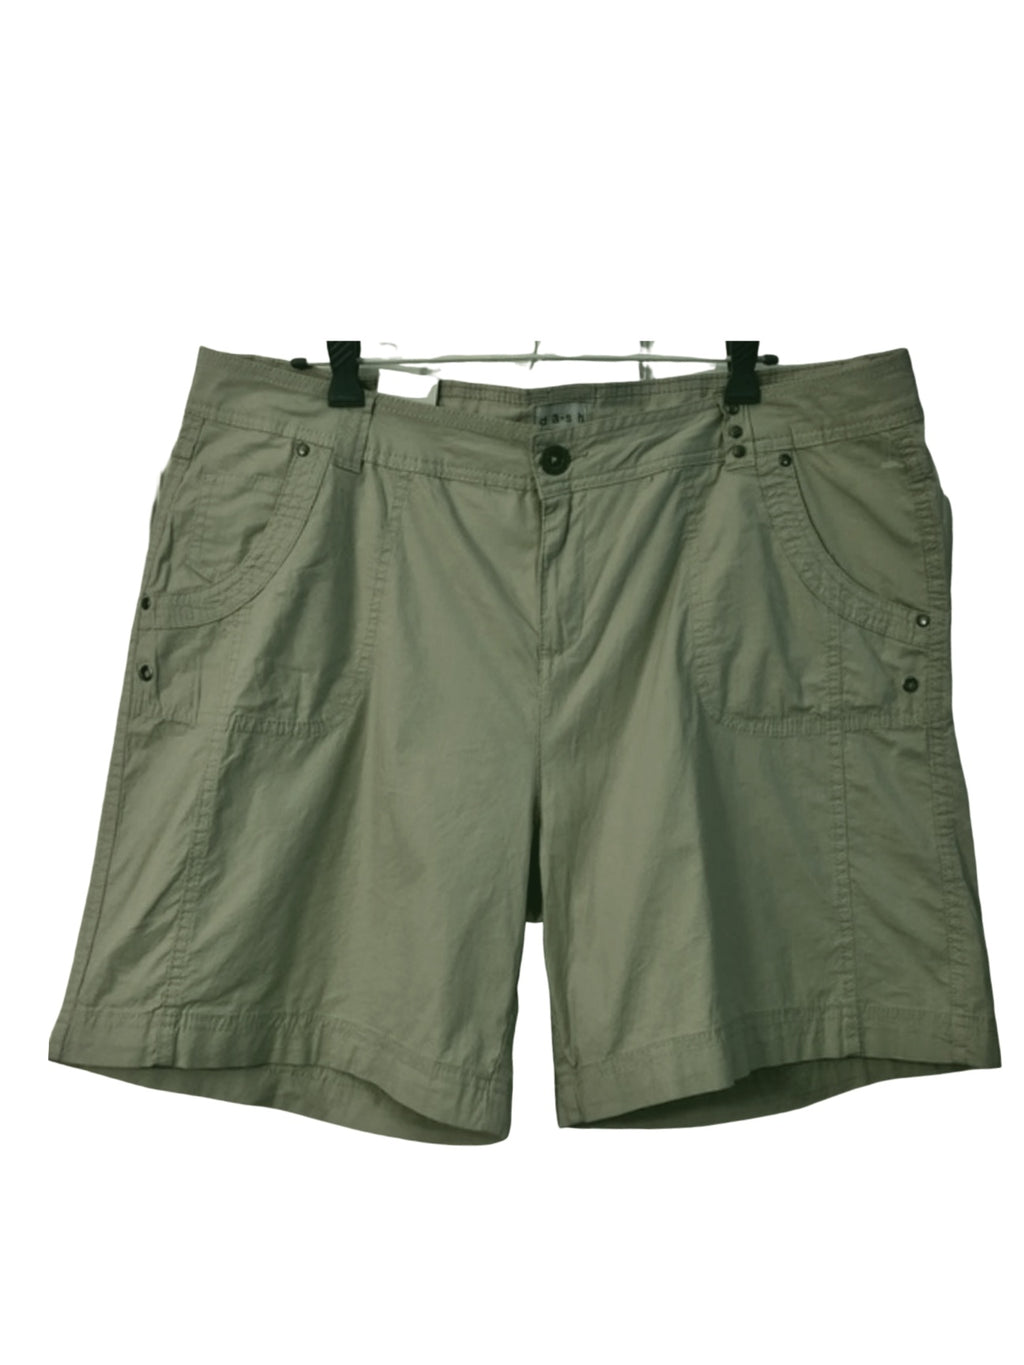 Olive Maddy Shorts 7""